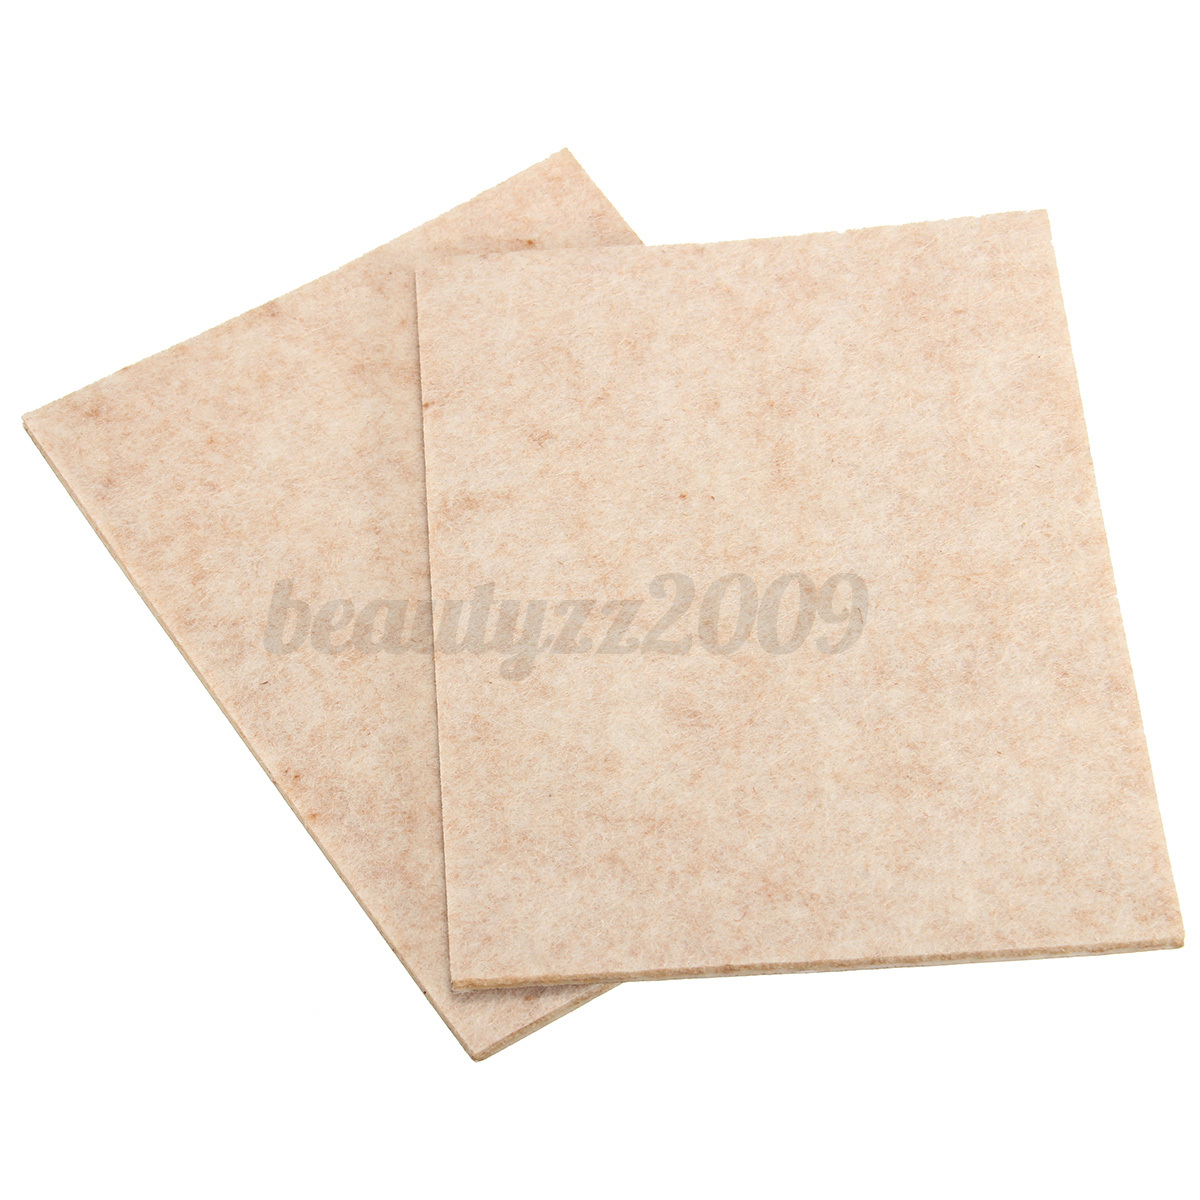 Heavy Duty Self Adhesive Furniture Protective Felt Pads 3mm Thick Ebay